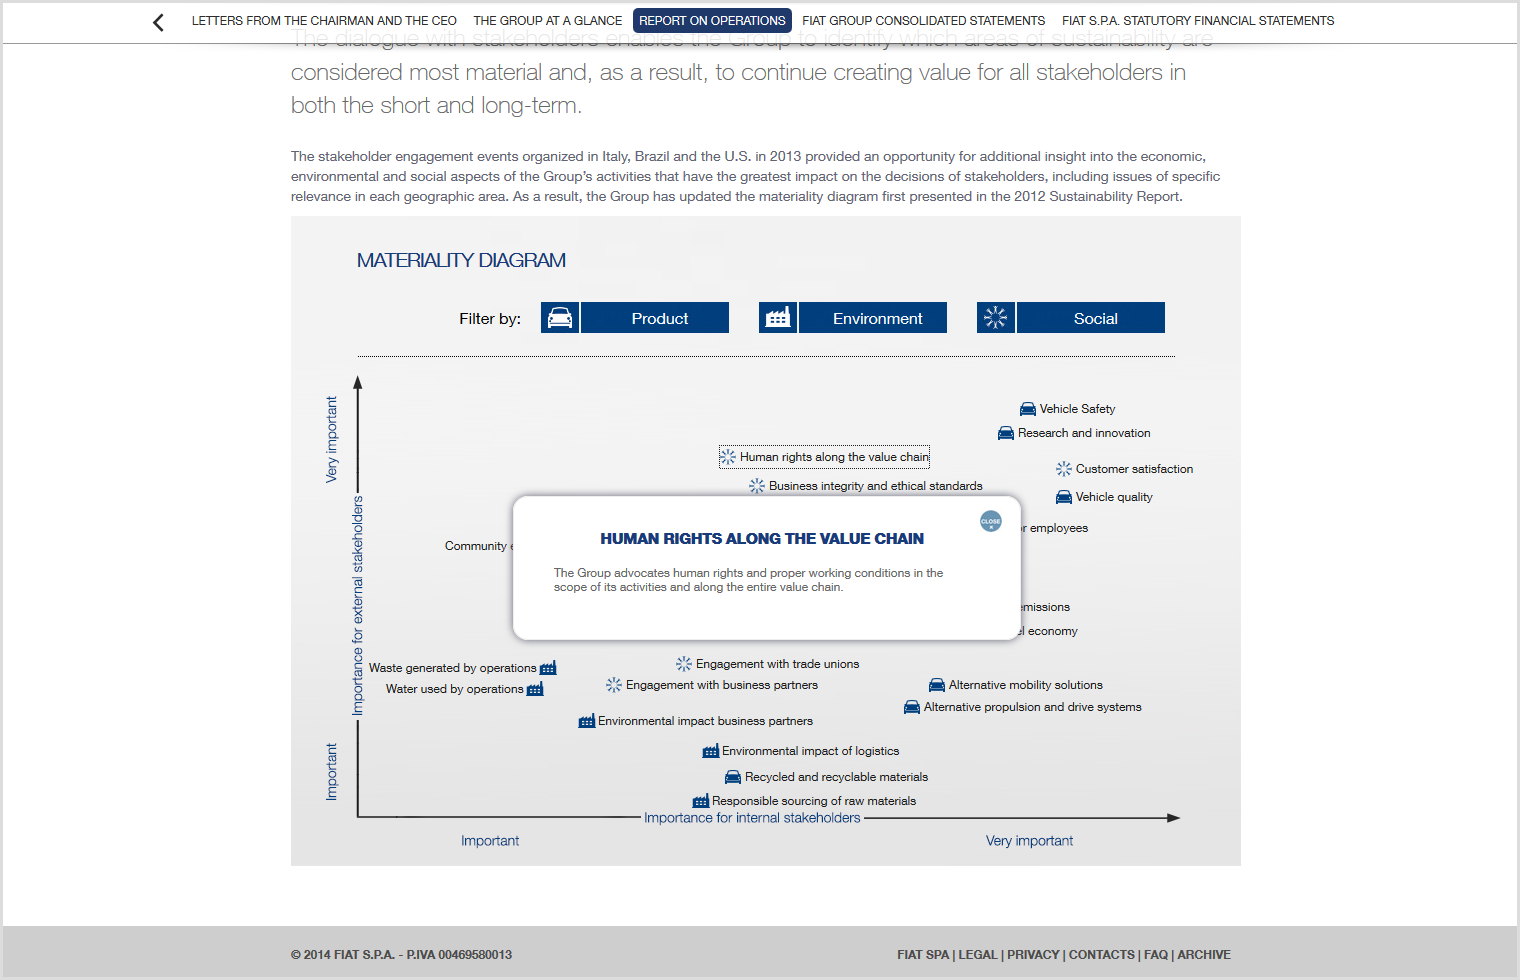 Interactive Materiality Matrix by Fiat